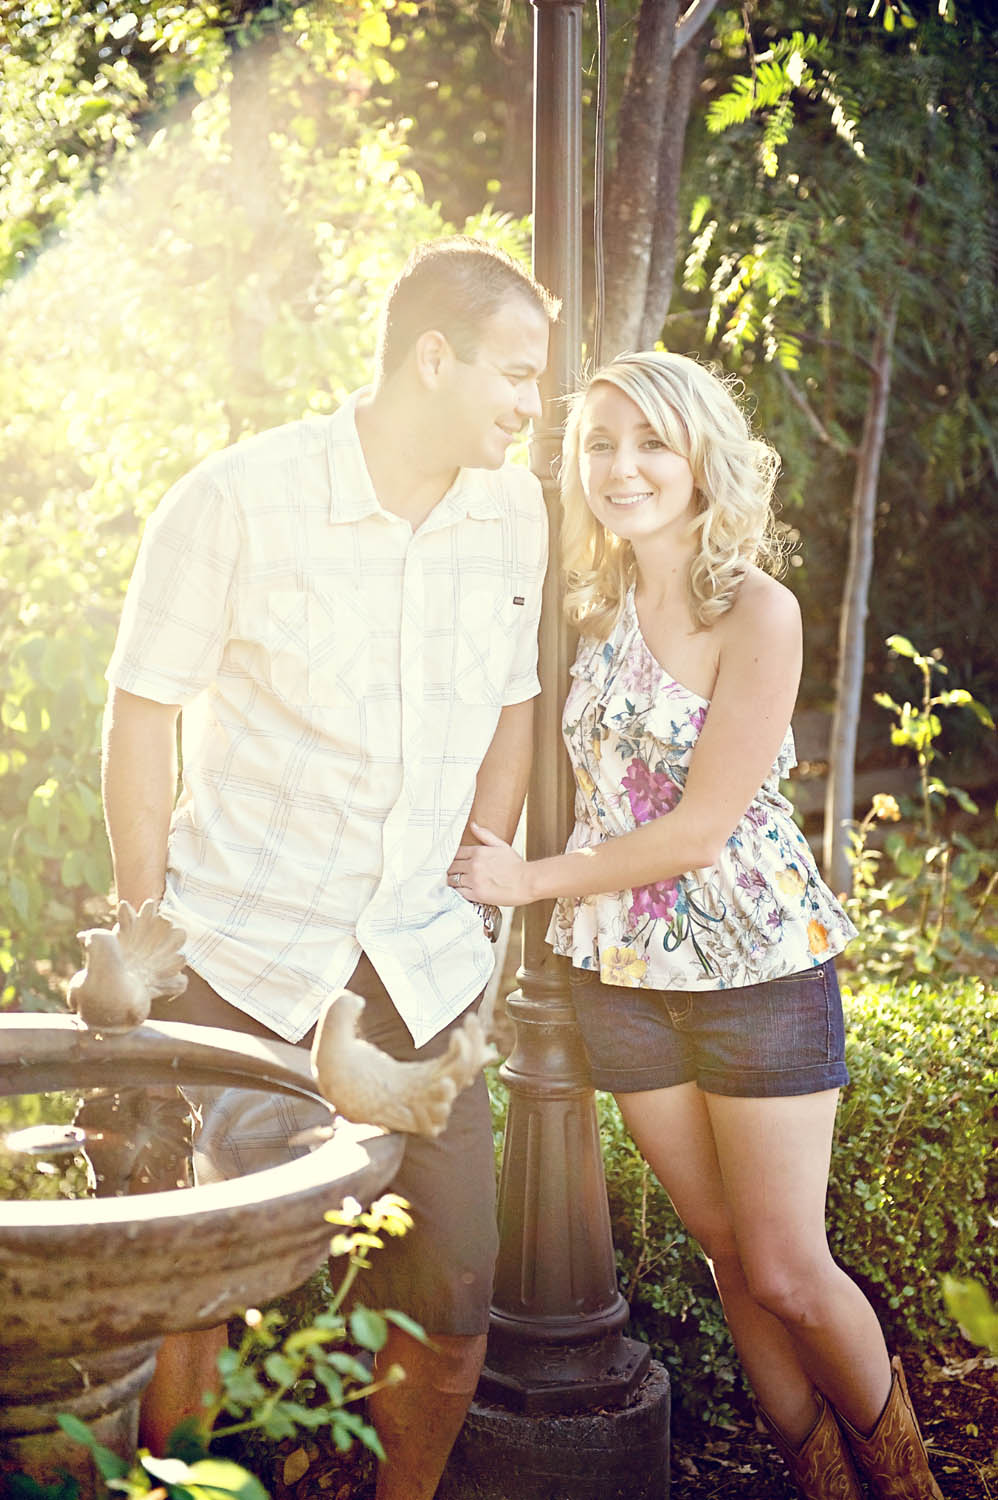 lake-oak-meadows-engagement-photos-ian-andrew-photography-022.jpg